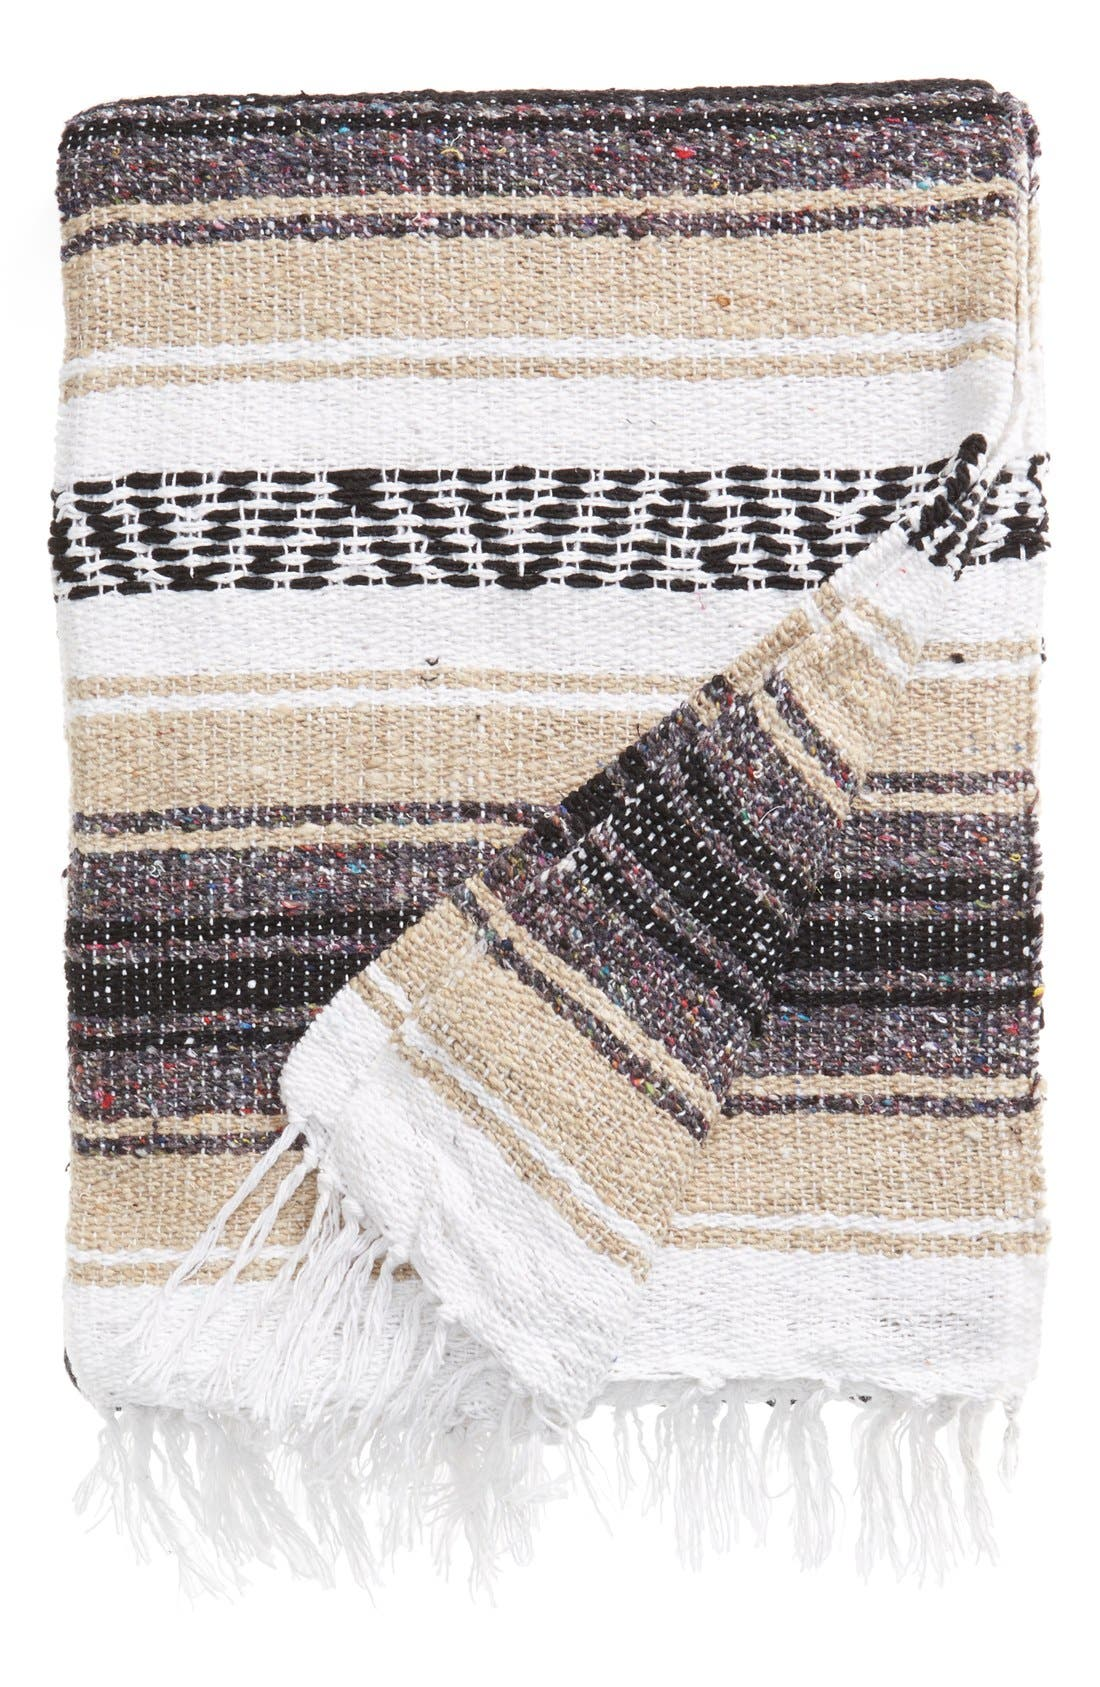 Alternate Image 1 Selected - Sercal 'Economy' Mexican Blanket